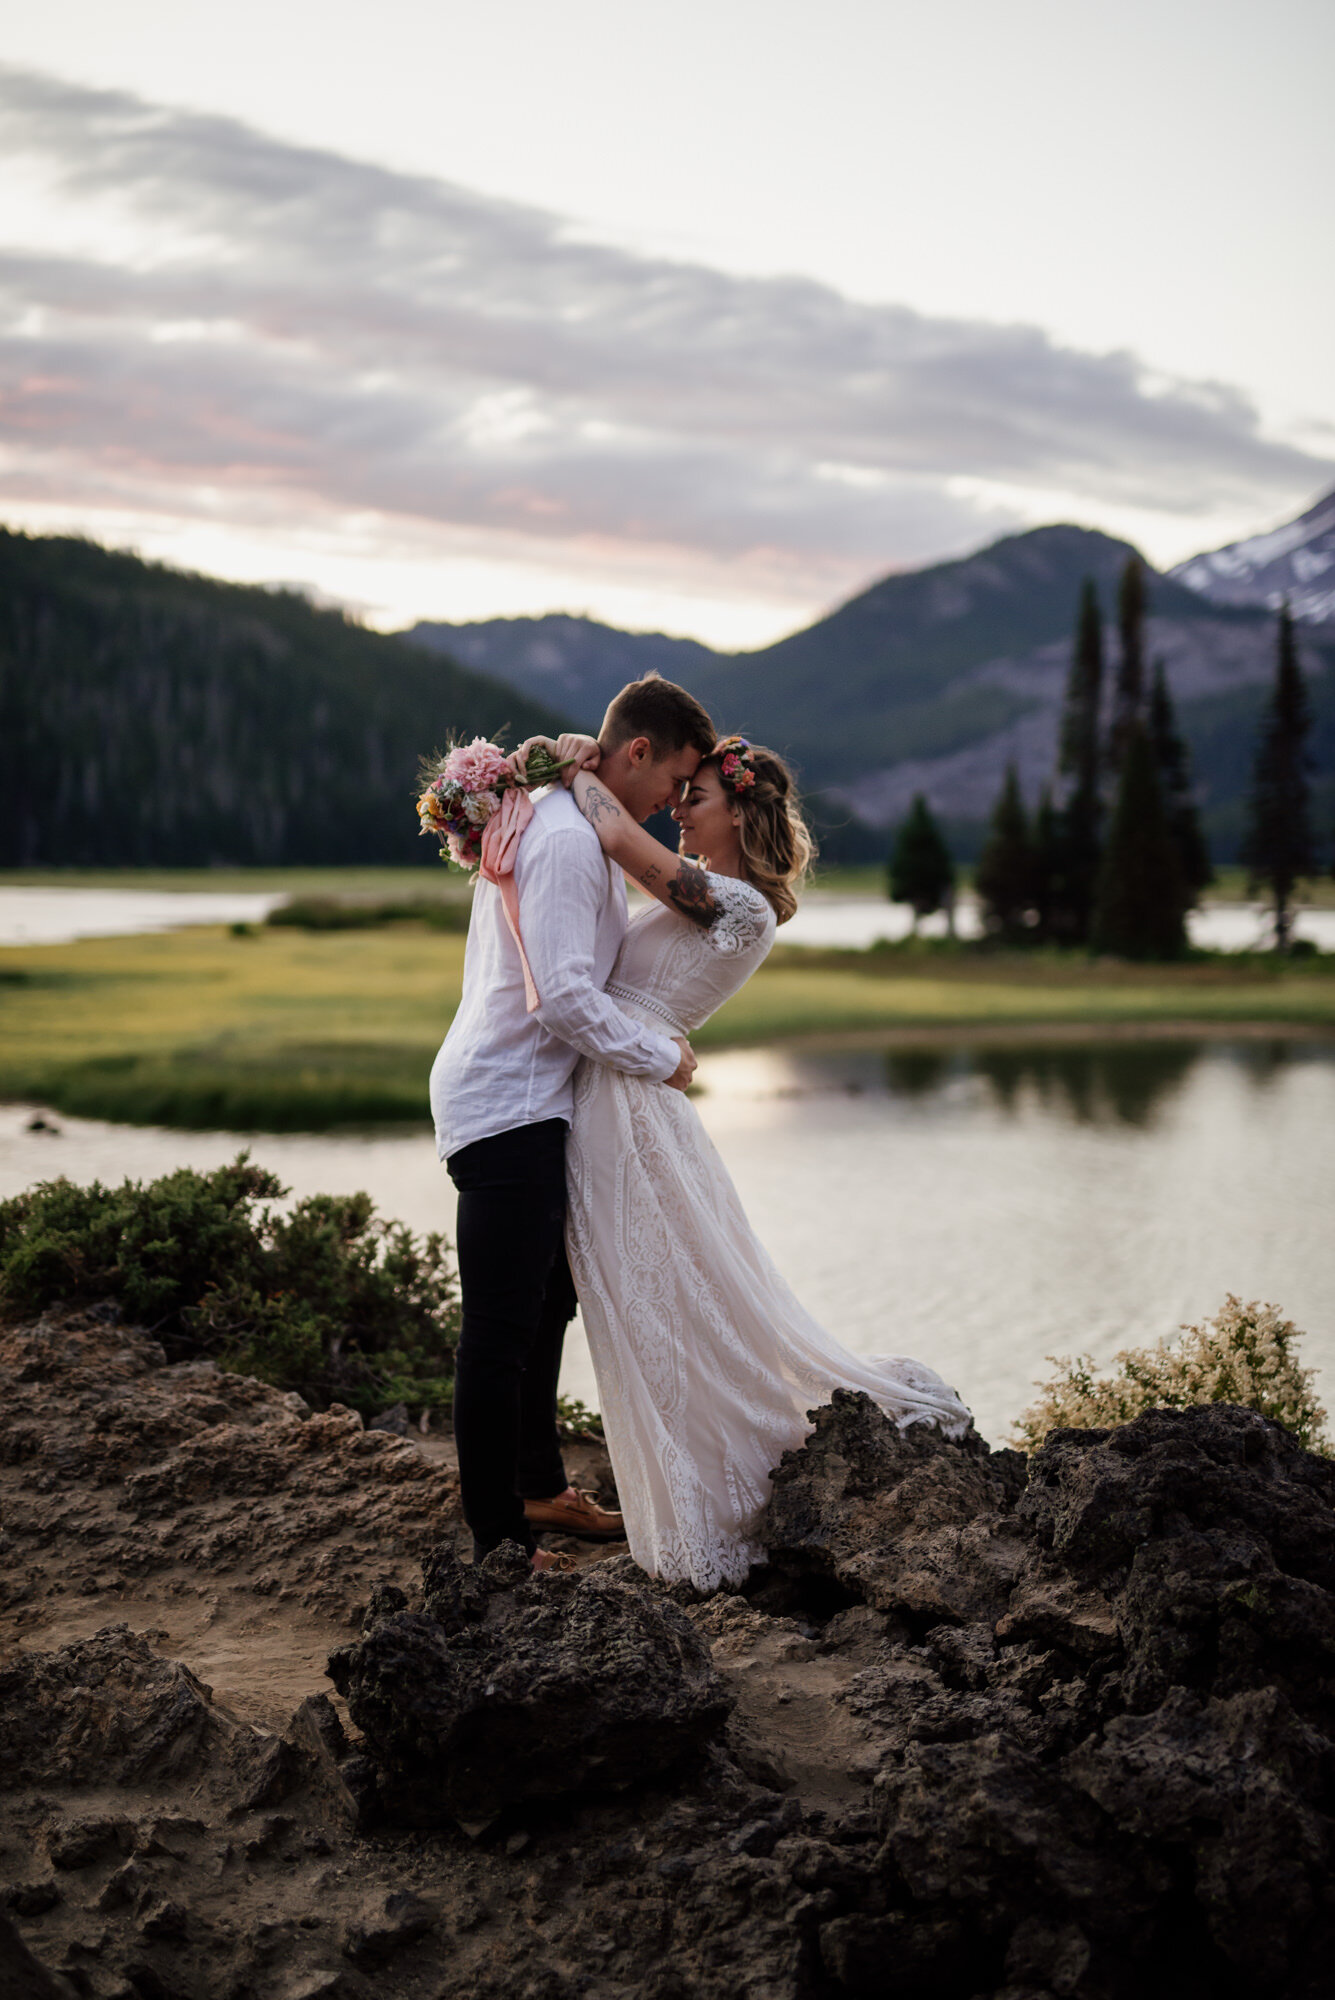 Eloping couple embrace at sunset in front of a calm lake.